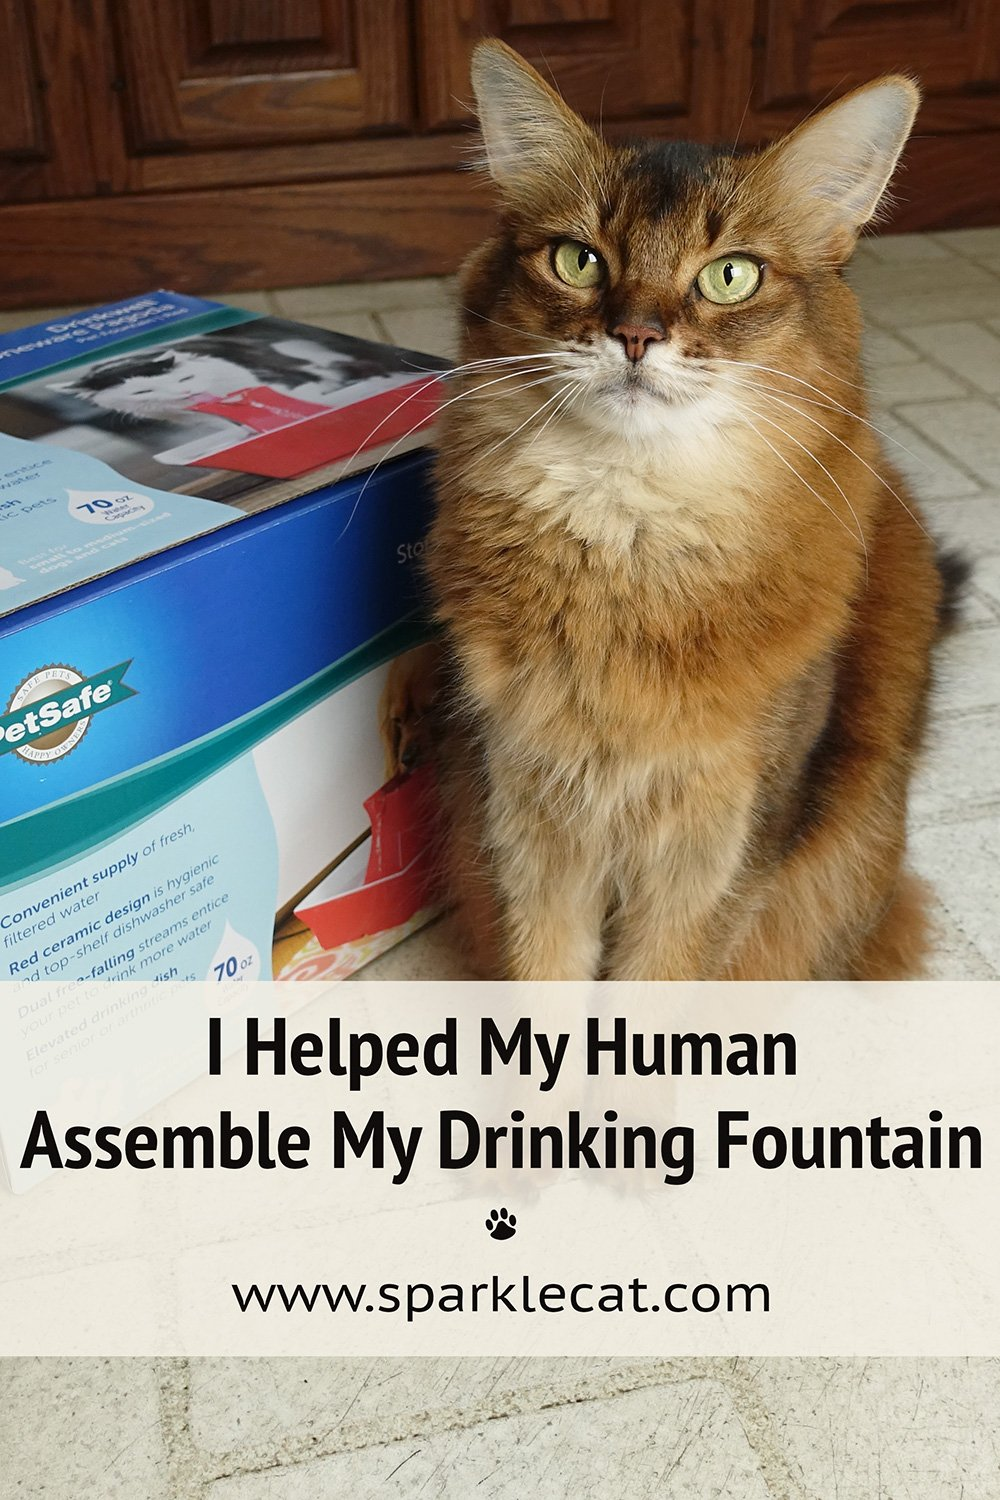 I Helped My Human Assemble My New Drinking Fountain